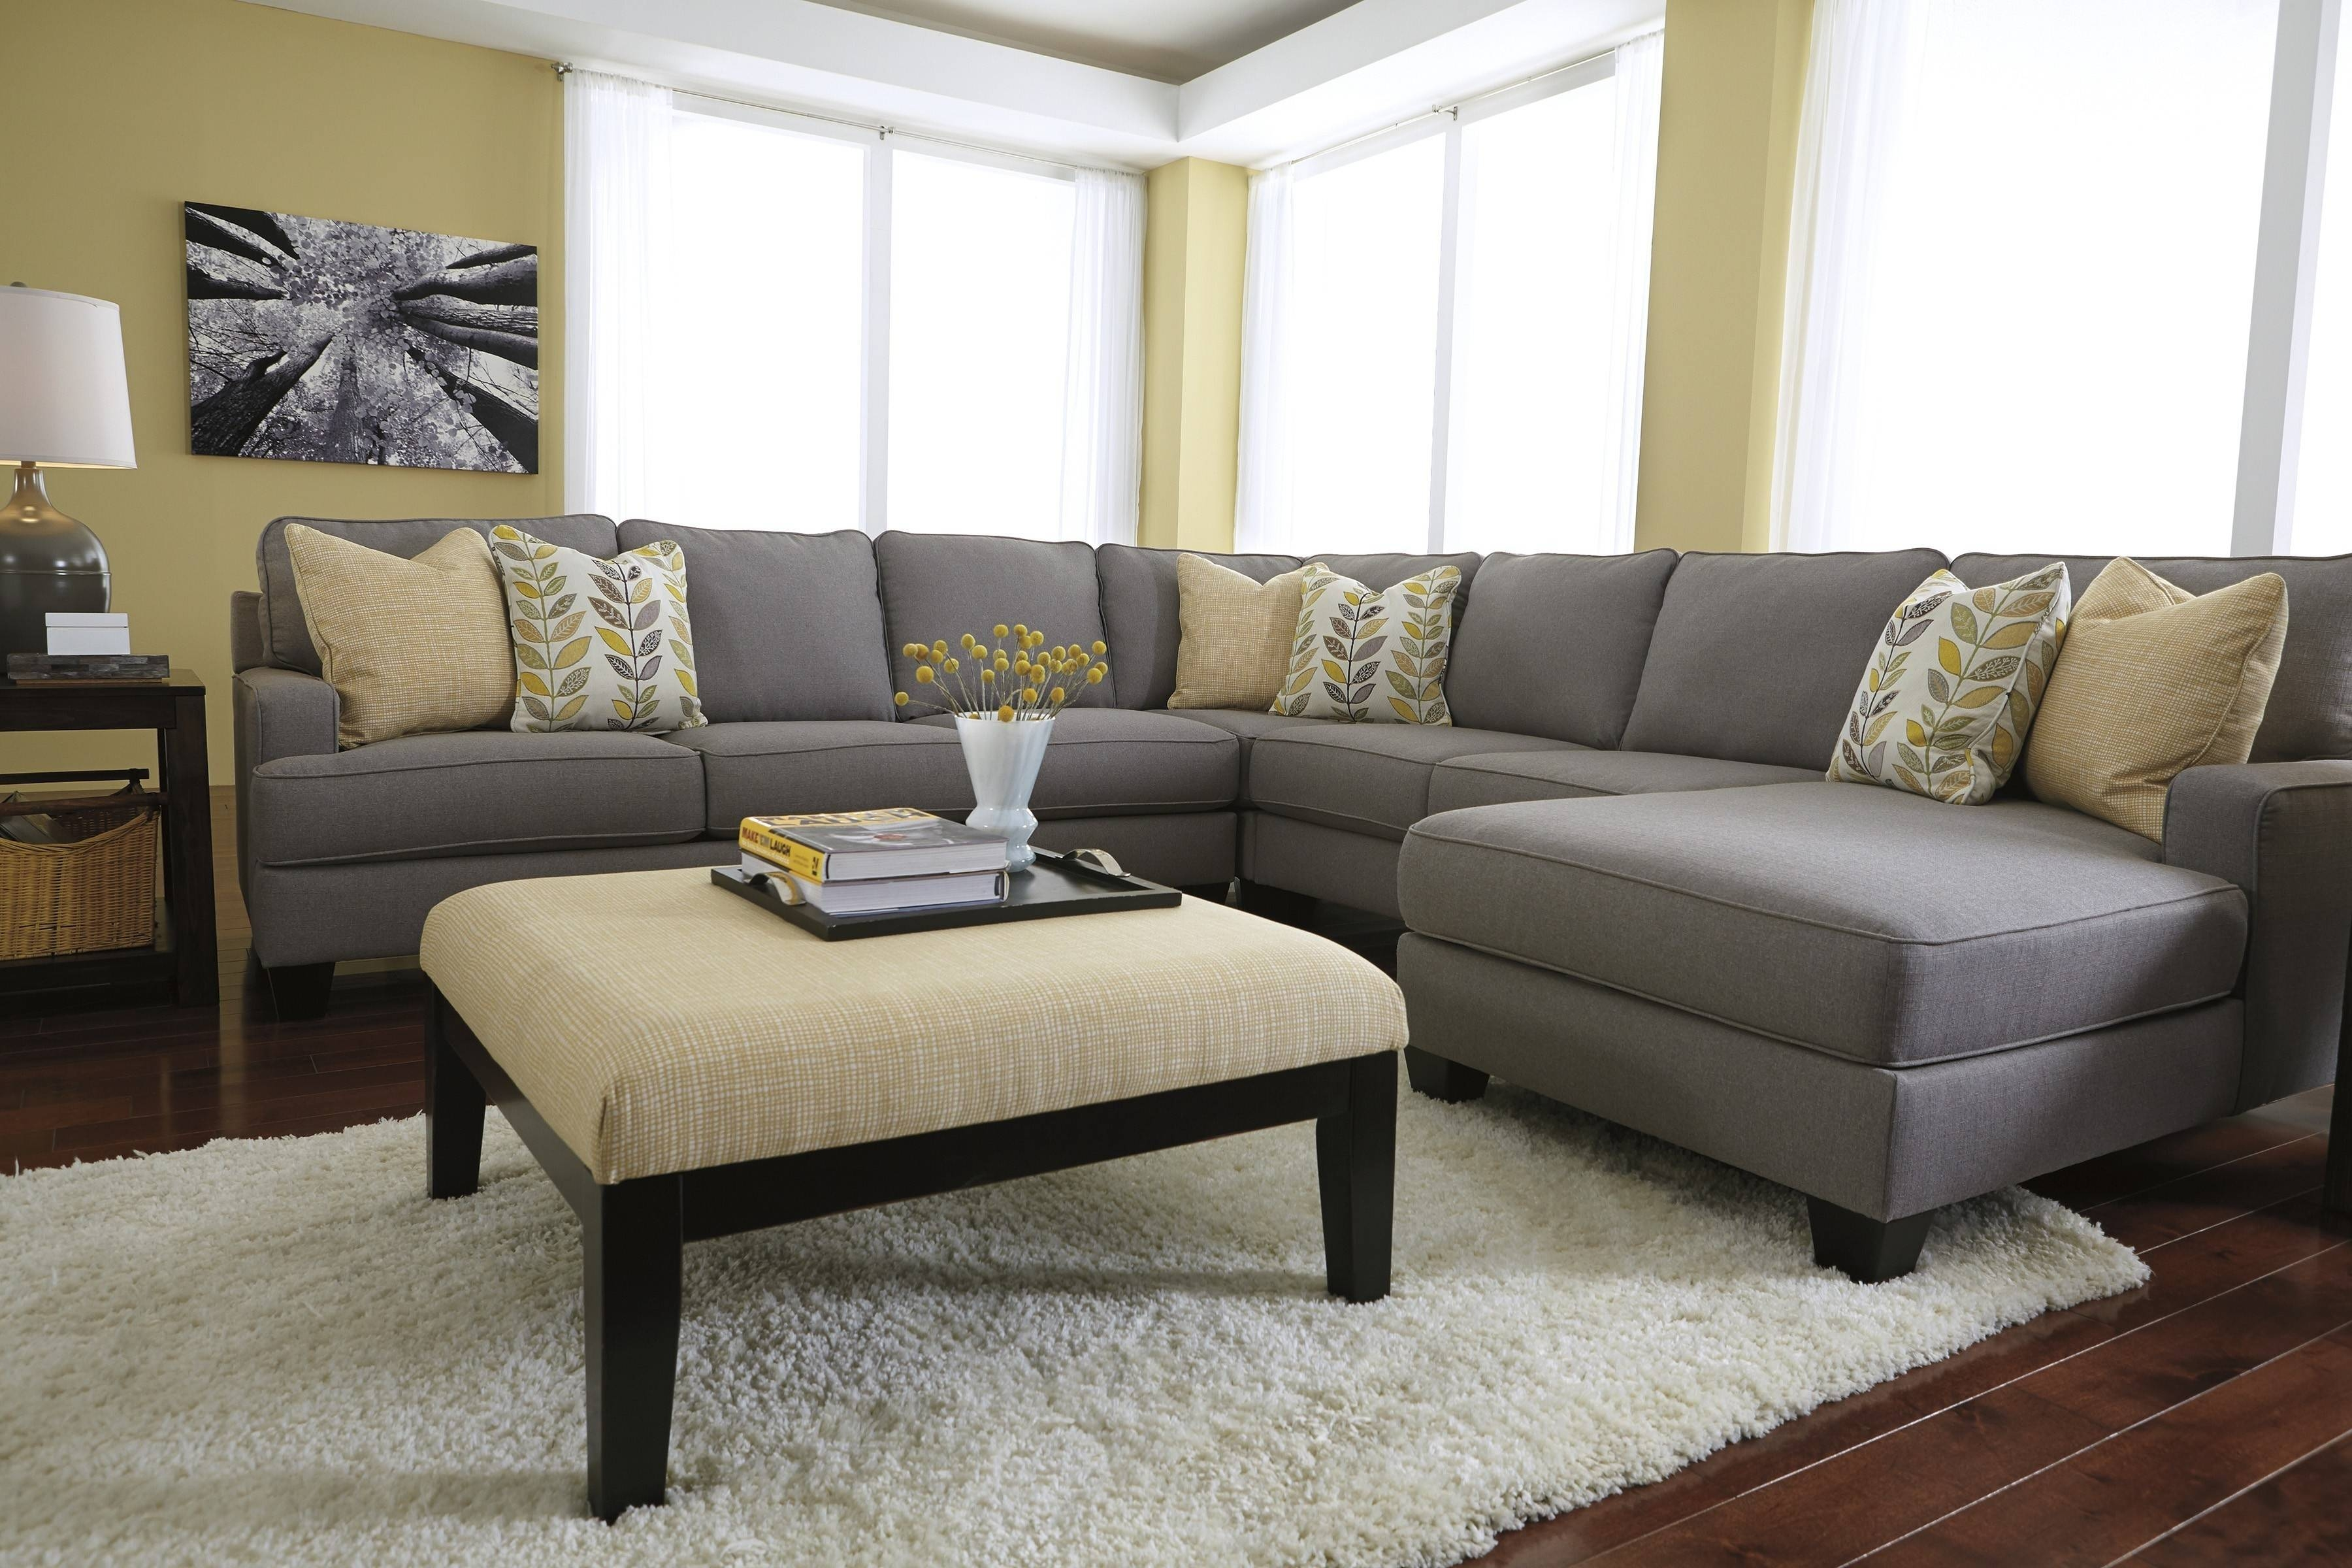 Charming Oversized Sectional Sofa With Chaise 87 About Remodel within Sectional Sofas Portland (Image 9 of 30)